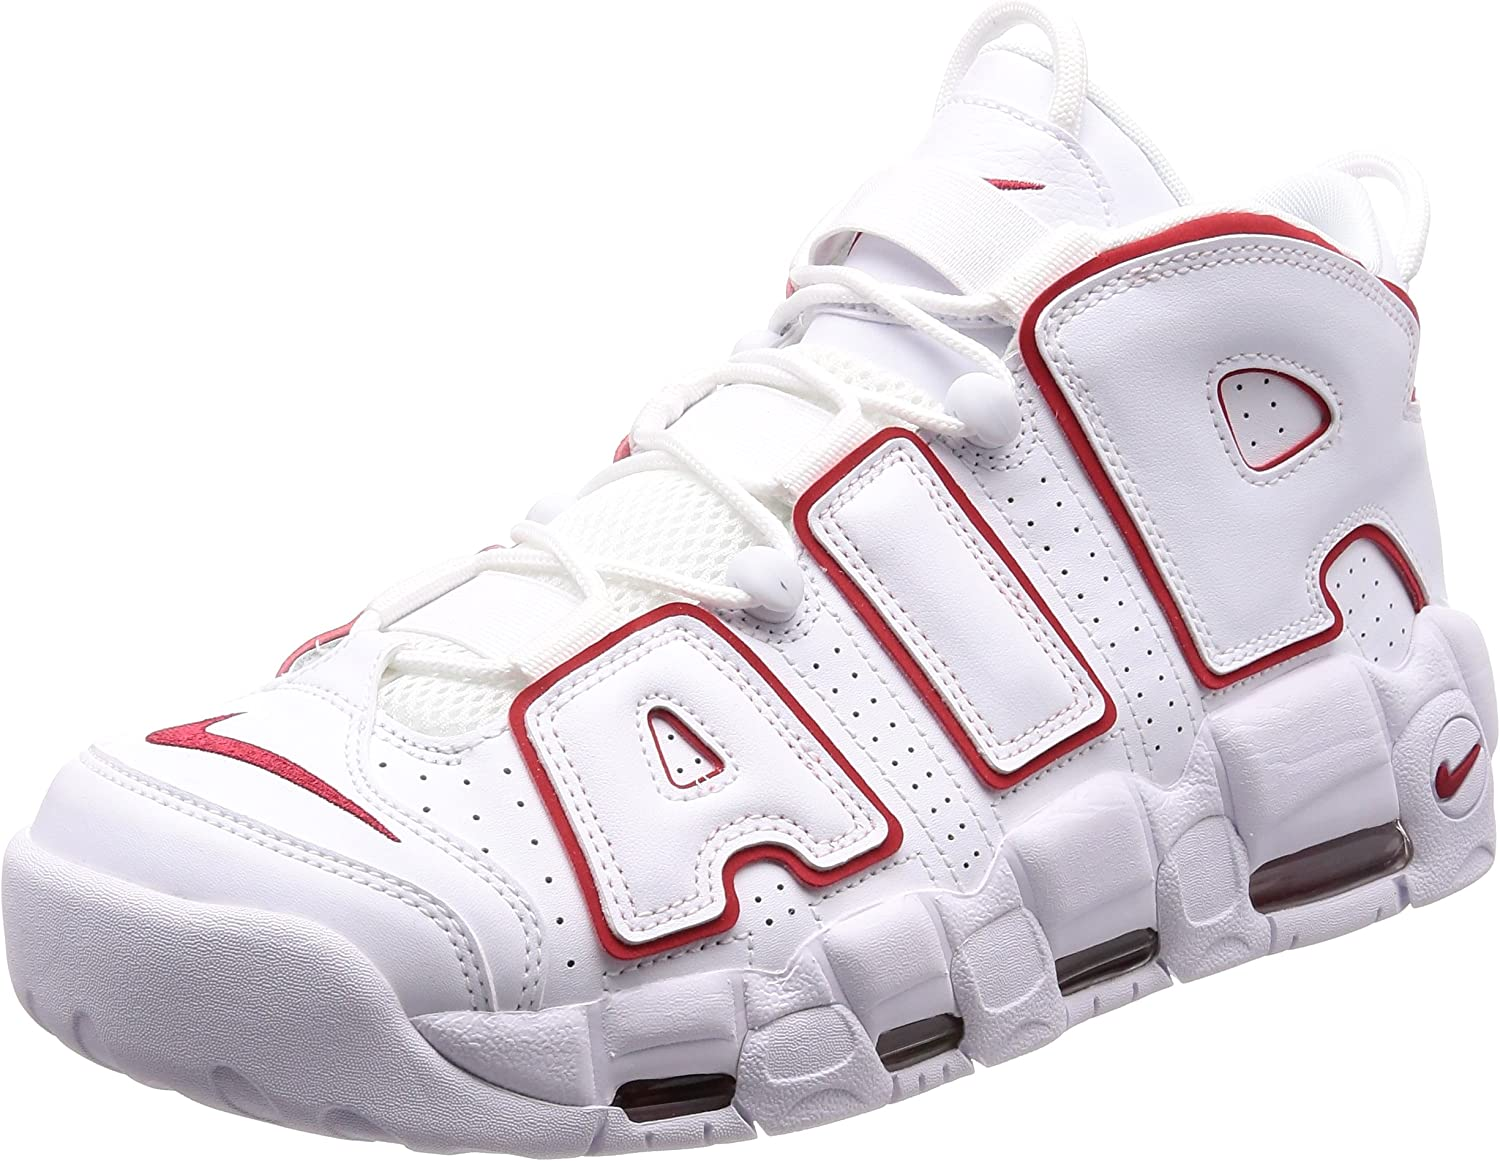 Nike Air More Uptempo 96 Mens 921948-102 Size 15